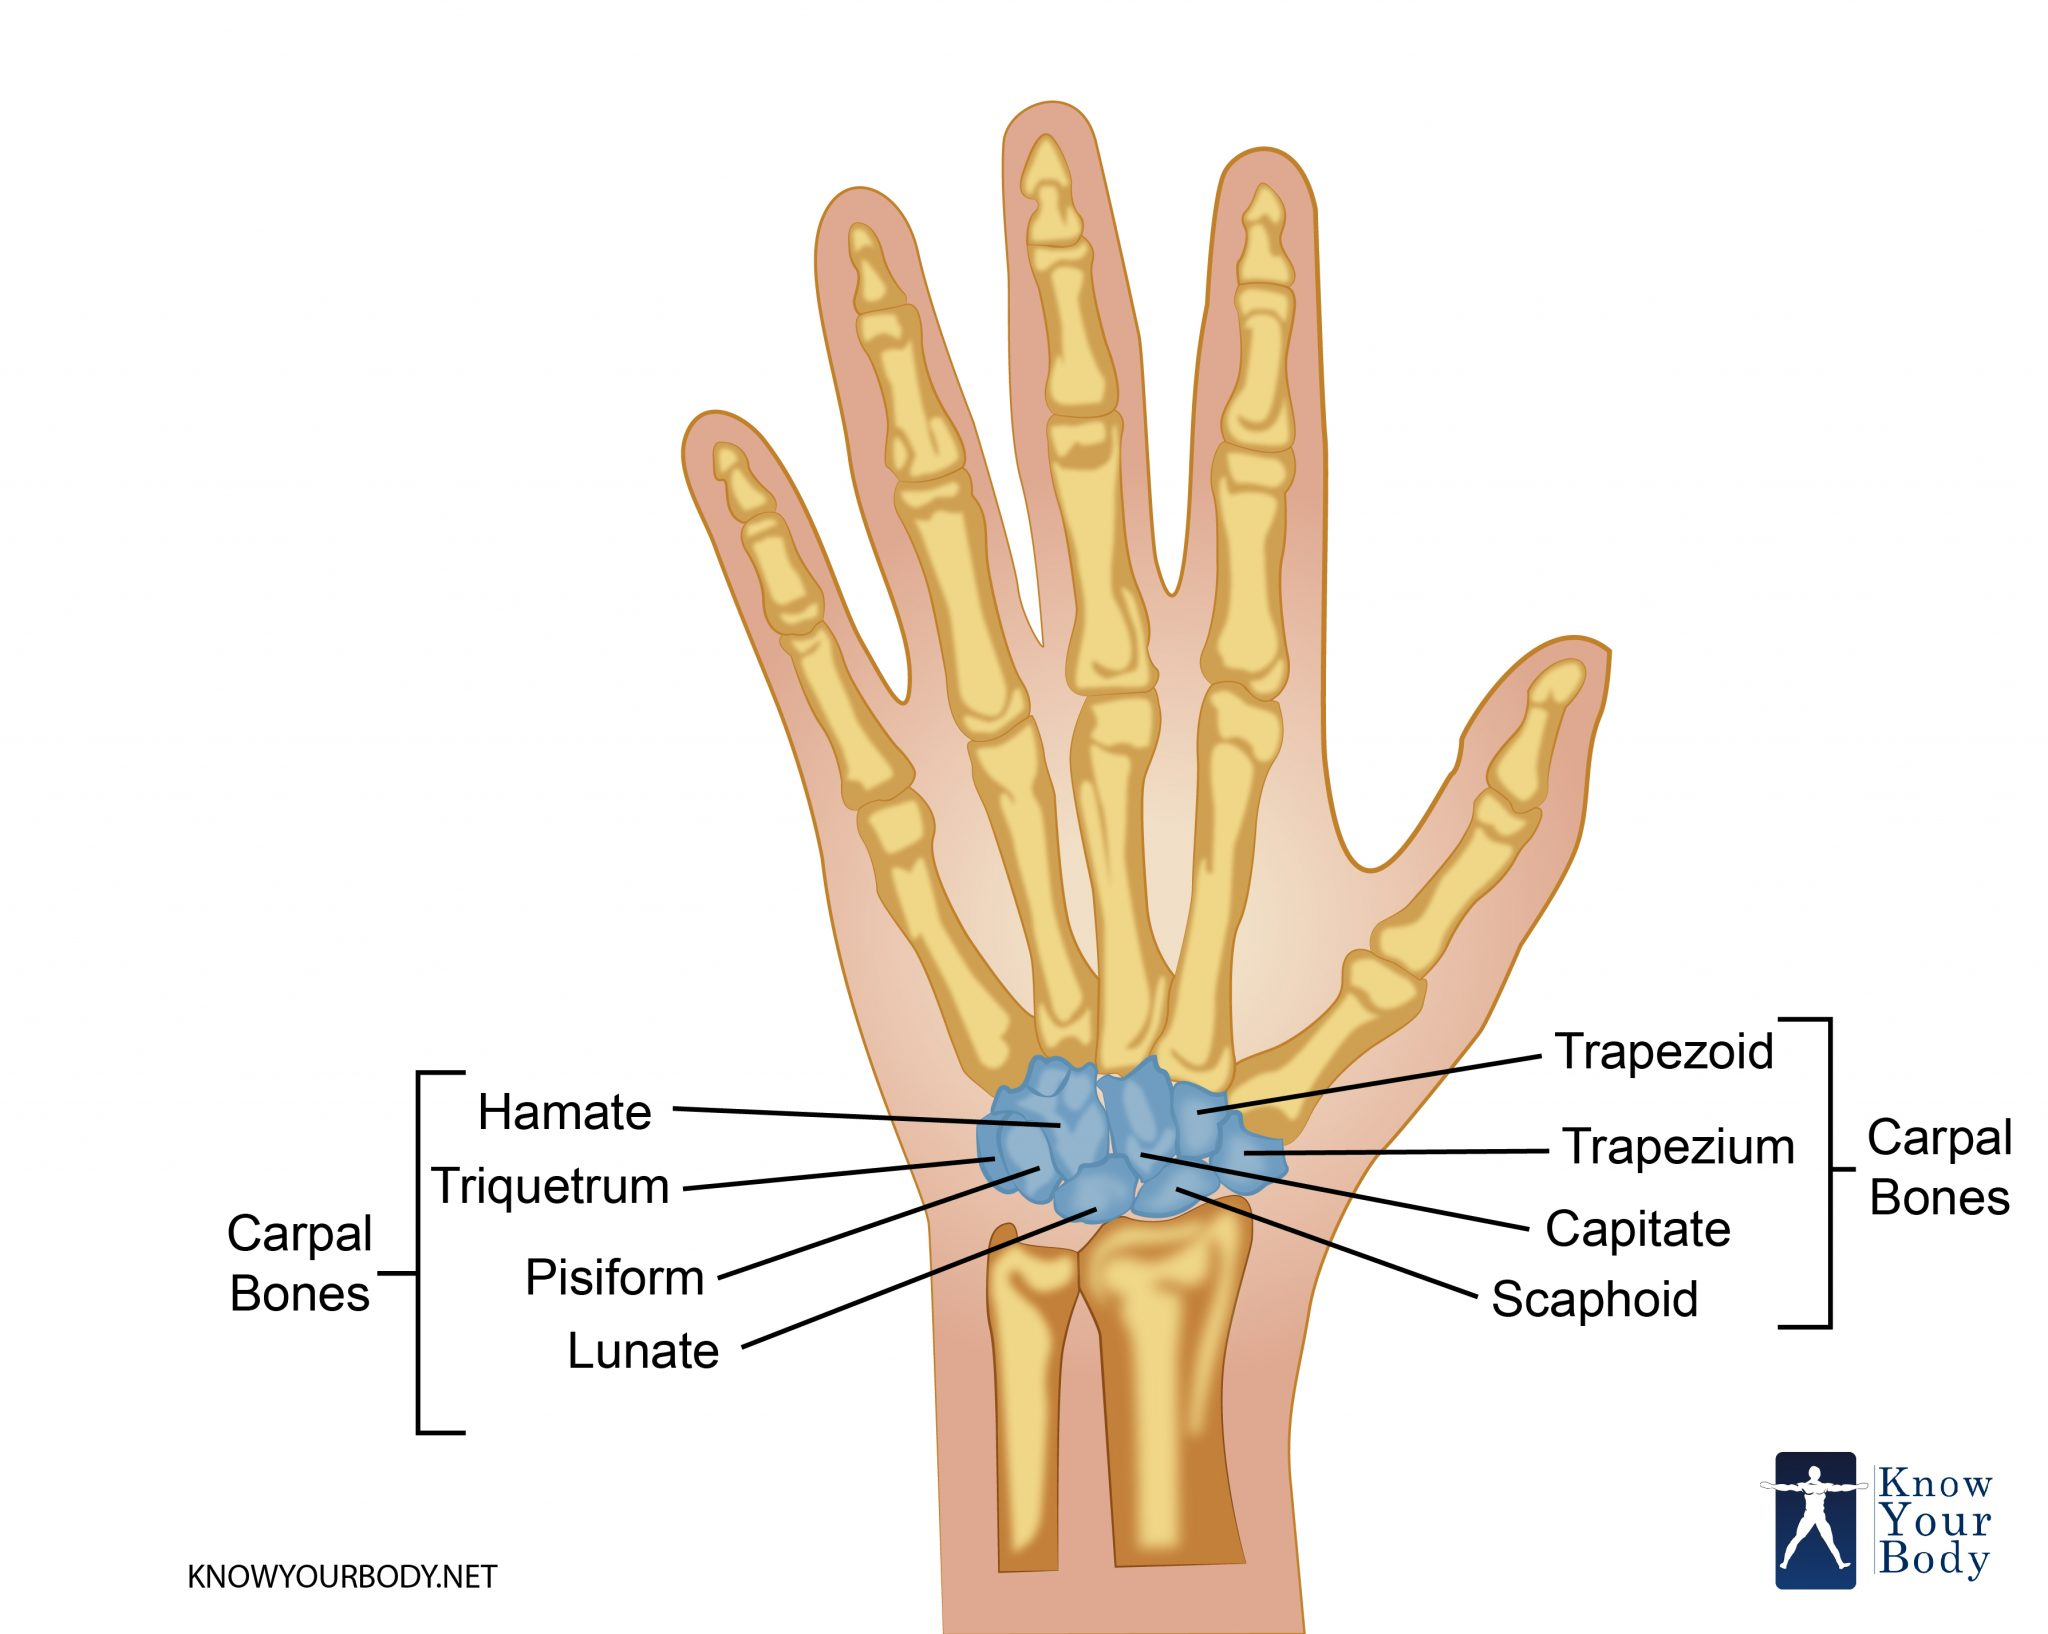 Carpal Bones Wrist Bones Anatomy Structure And Faqs